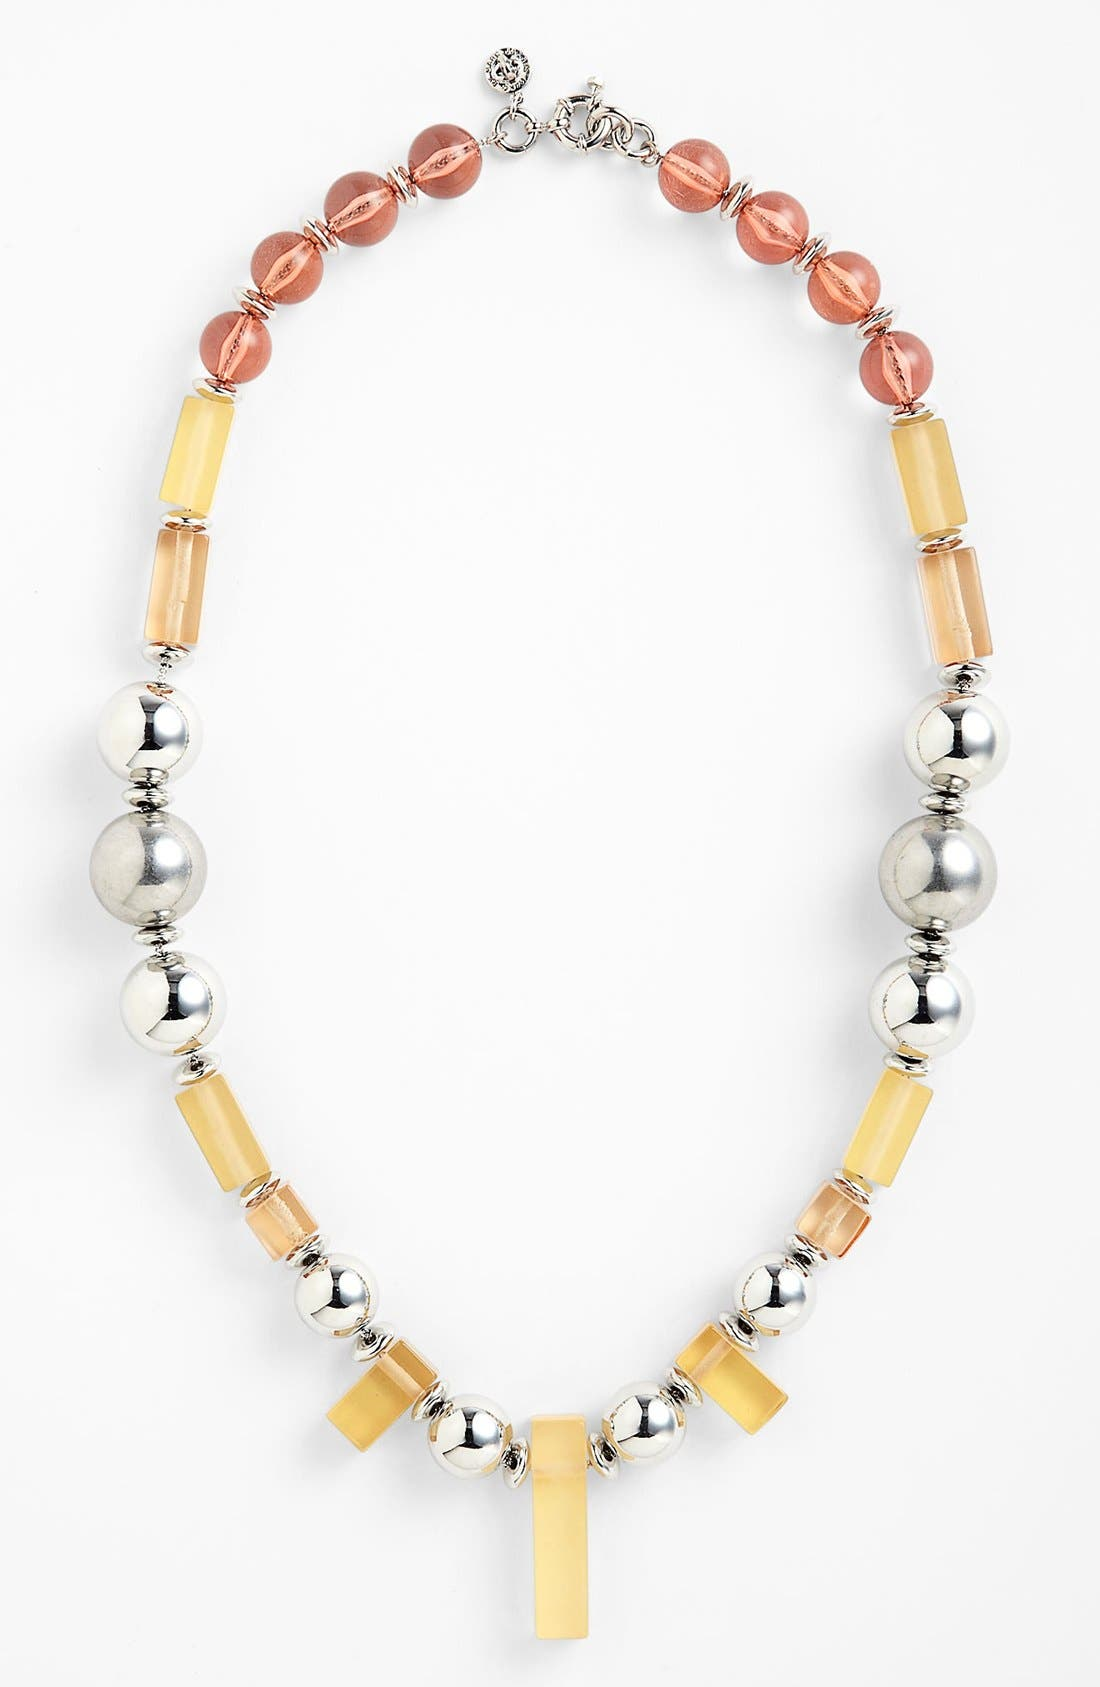 Main Image - MARC BY MARC JACOBS 'Ball & Chains' Beaded Necklace